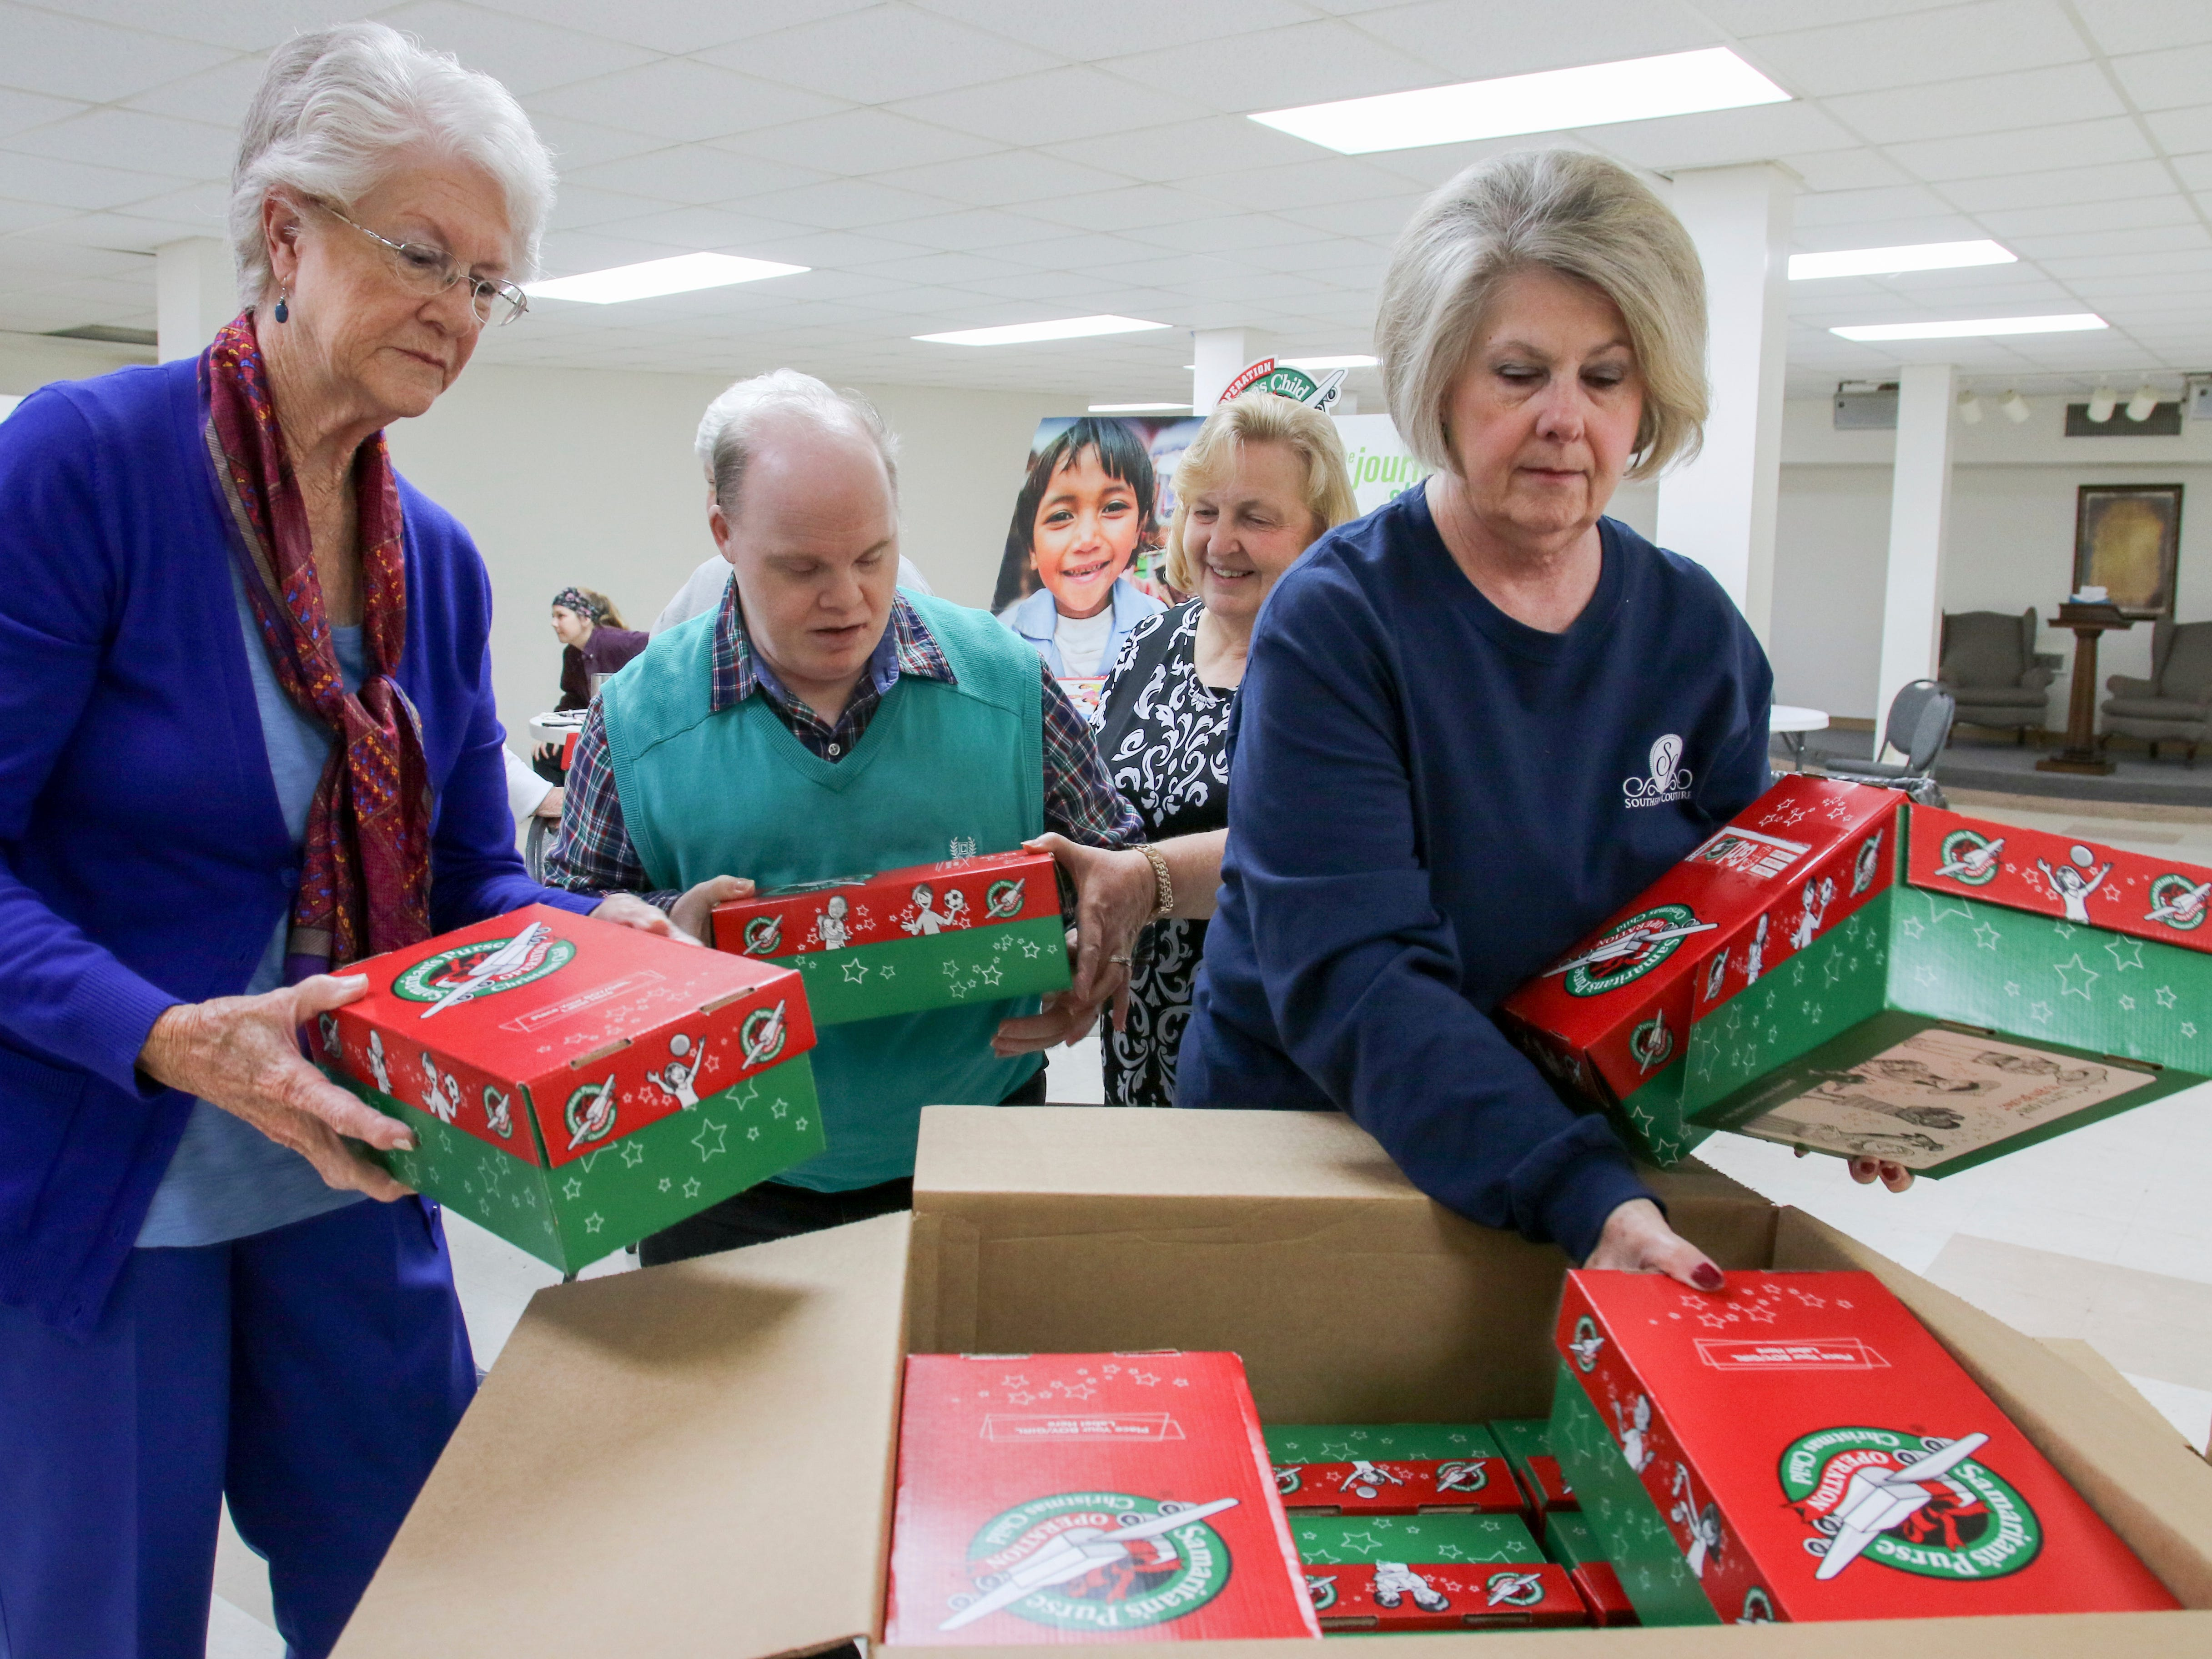 Barbara Parker, left, Wilton Cook, Gladys Cook and Linda Davenport, members of 15th Avenue Baptist Church in Meridian, Miss., place shoebox gifts for children overseas into boxes Monday, Nov, 19, 2018, to be delivered during Operation Christmas Child, a project of Samaritan's Purse International Relief. The church collected 6,500 shoeboxes to go with the amount collected by other churches throughout the area.